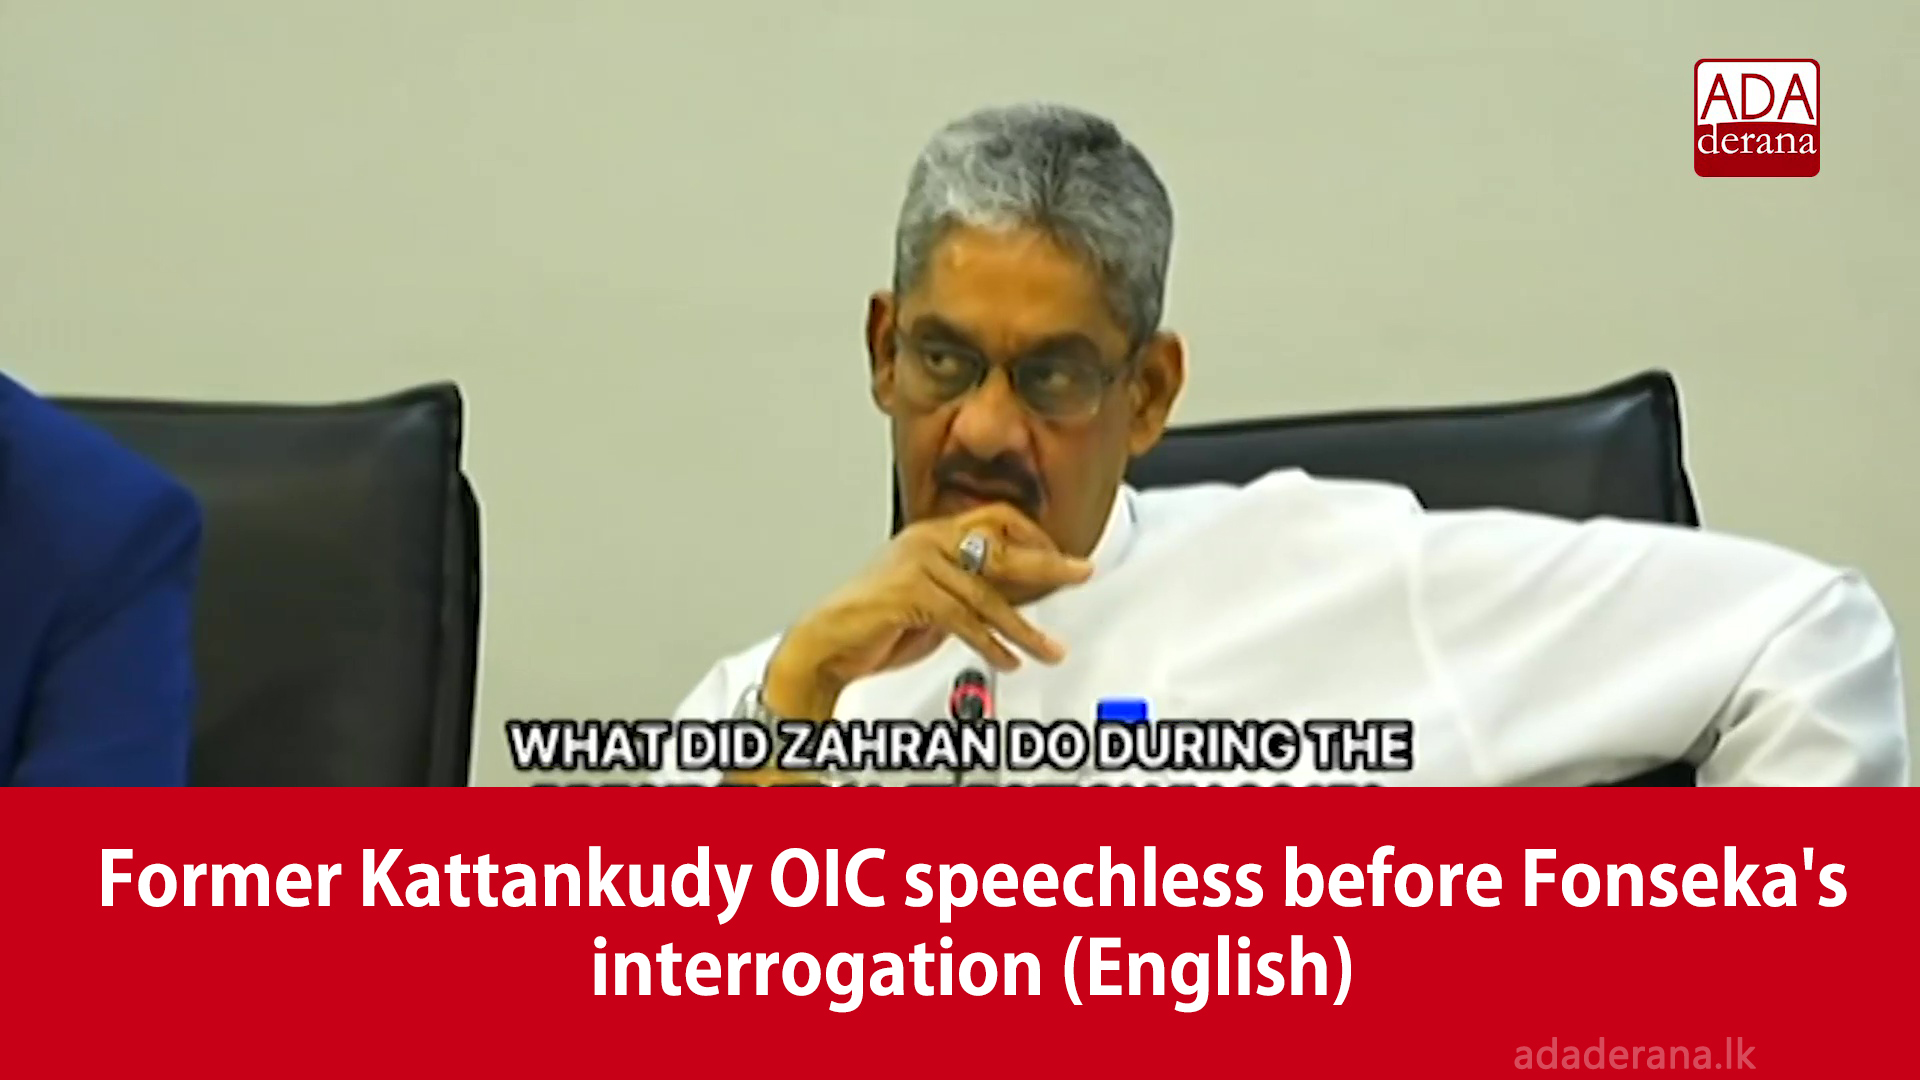 Former Kattankudy OIC speechless before Fonseka's interrogation (English)